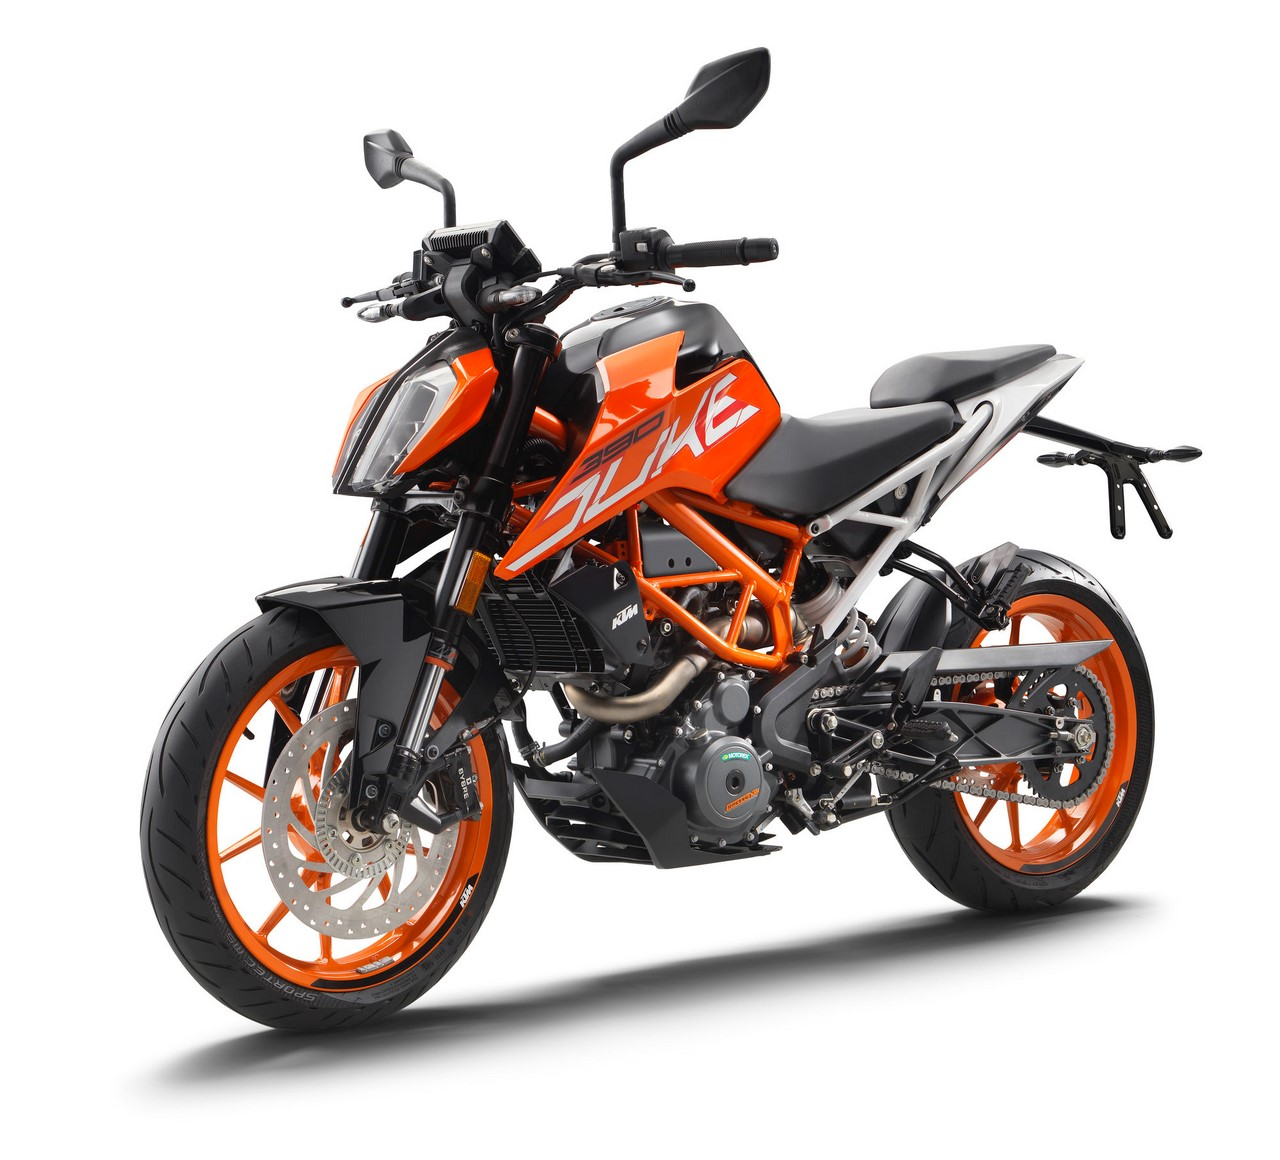 2017 KTM Duke 390 front three quarters standstill